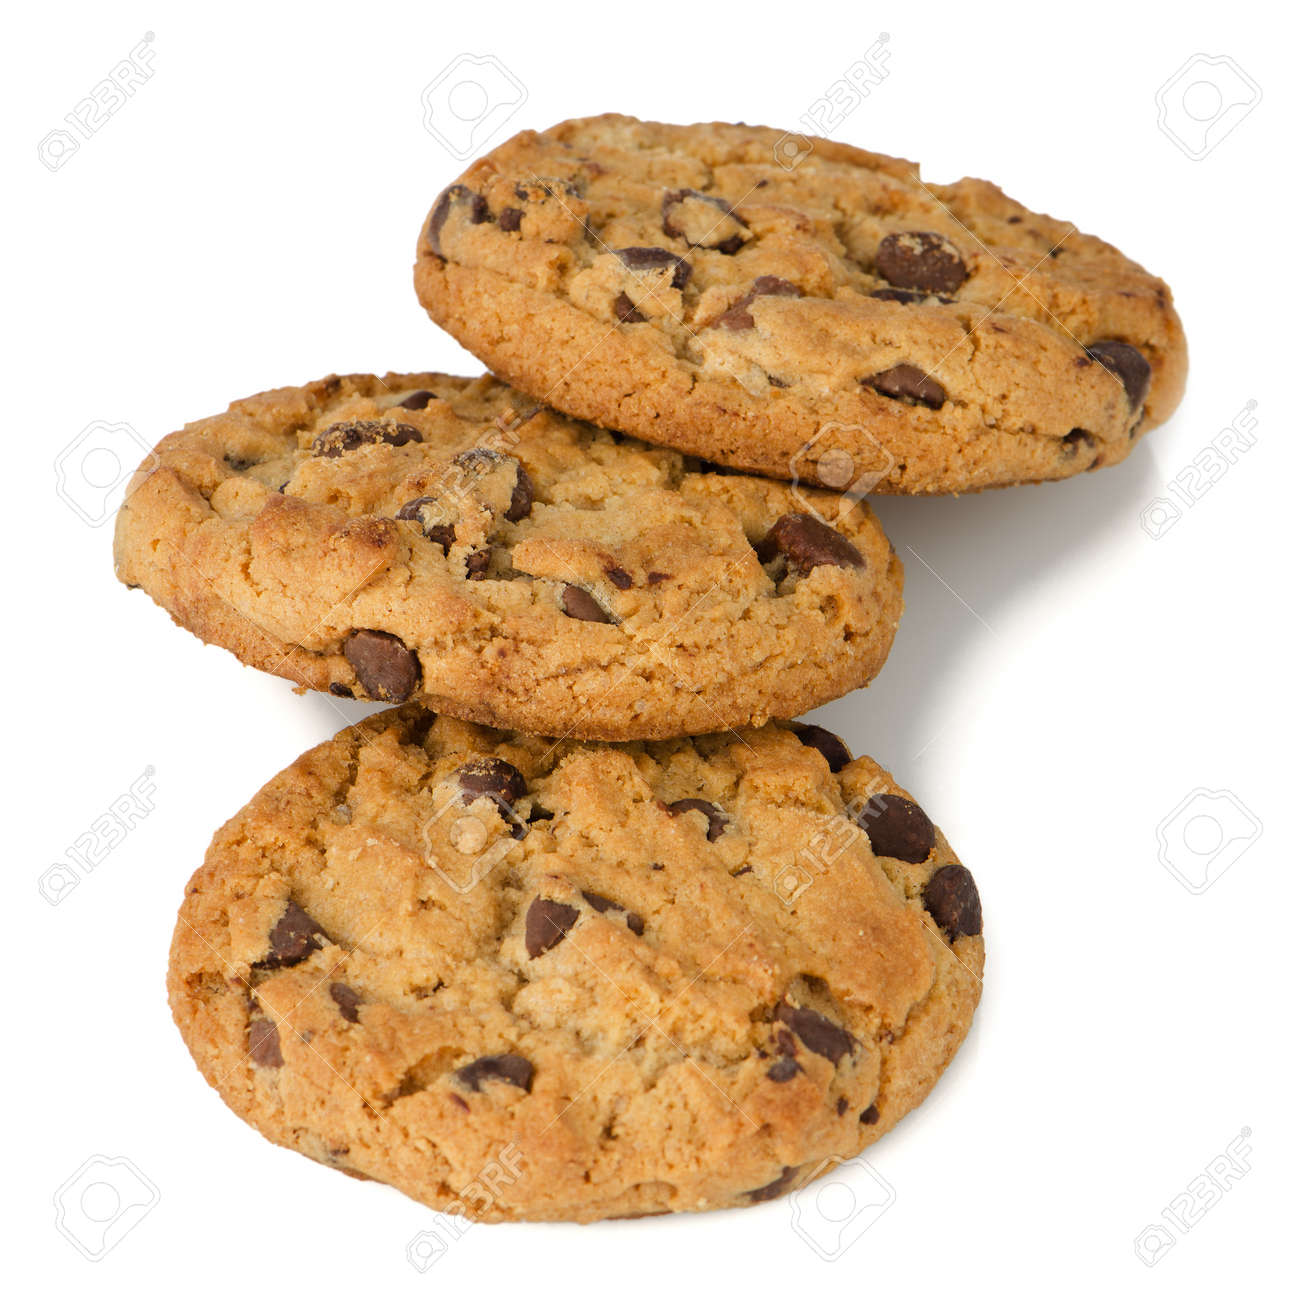 Chocolate chip cookies isolated on white background. Stock Photo - 14507816